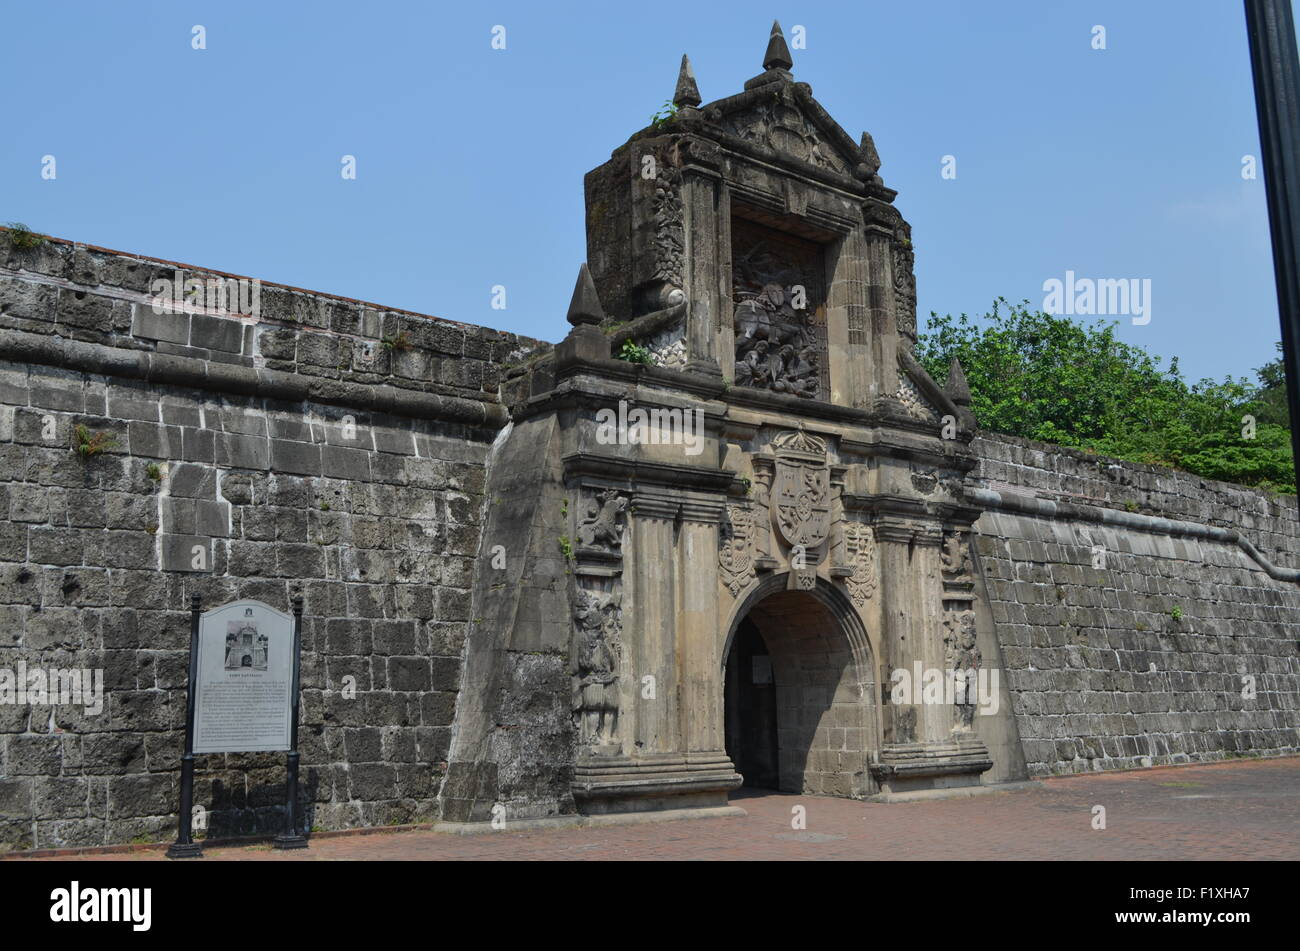 FortSantiagoManila.Oldest fortification once owned by the British (1762-1764).In1942 becameJapanese and hundreds - Stock Image